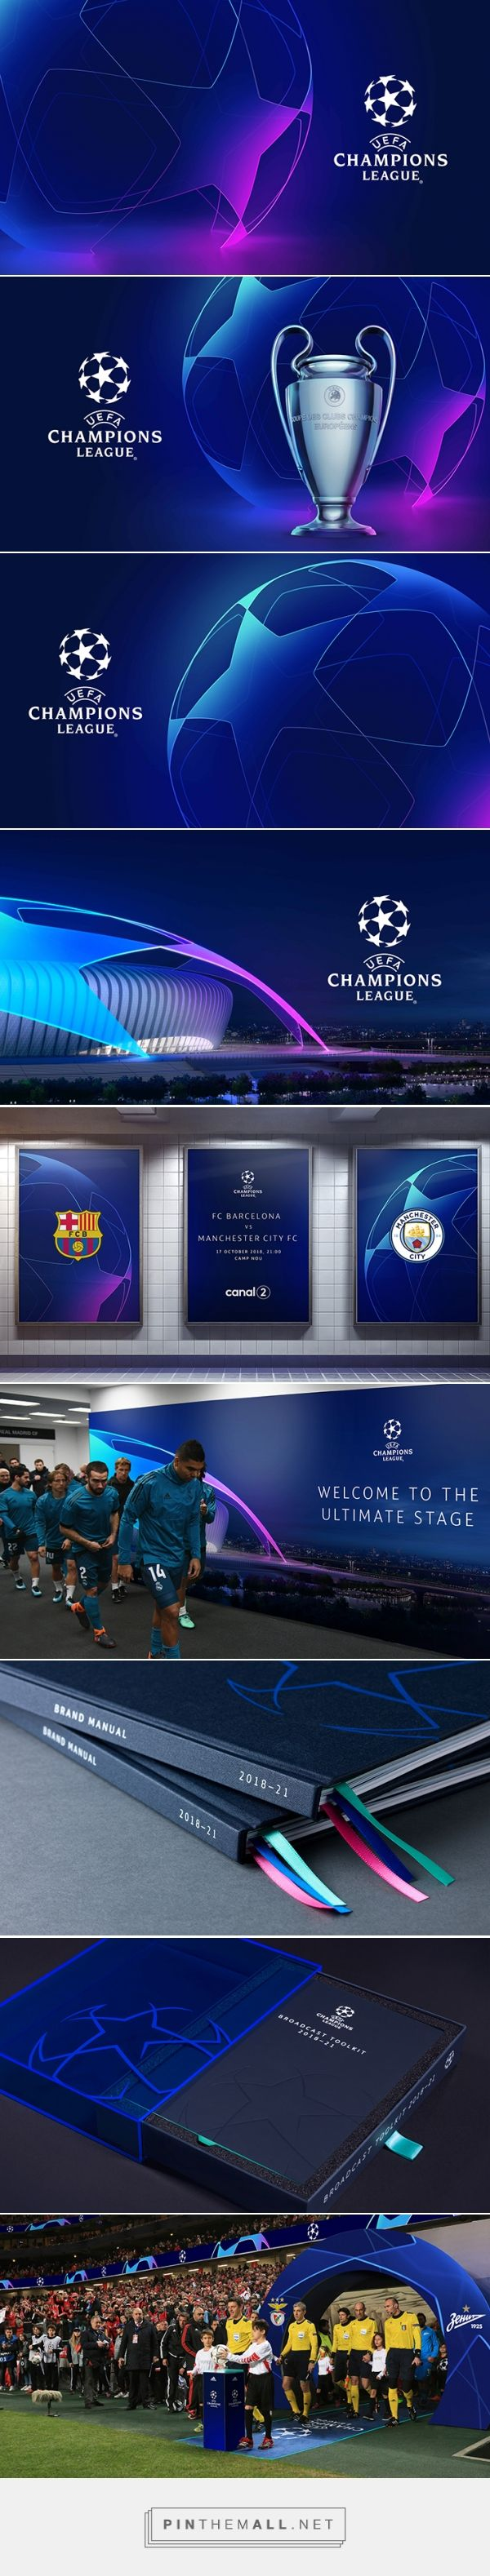 Pin by Syahrul Salleh on Graphic Design | Uefa champions